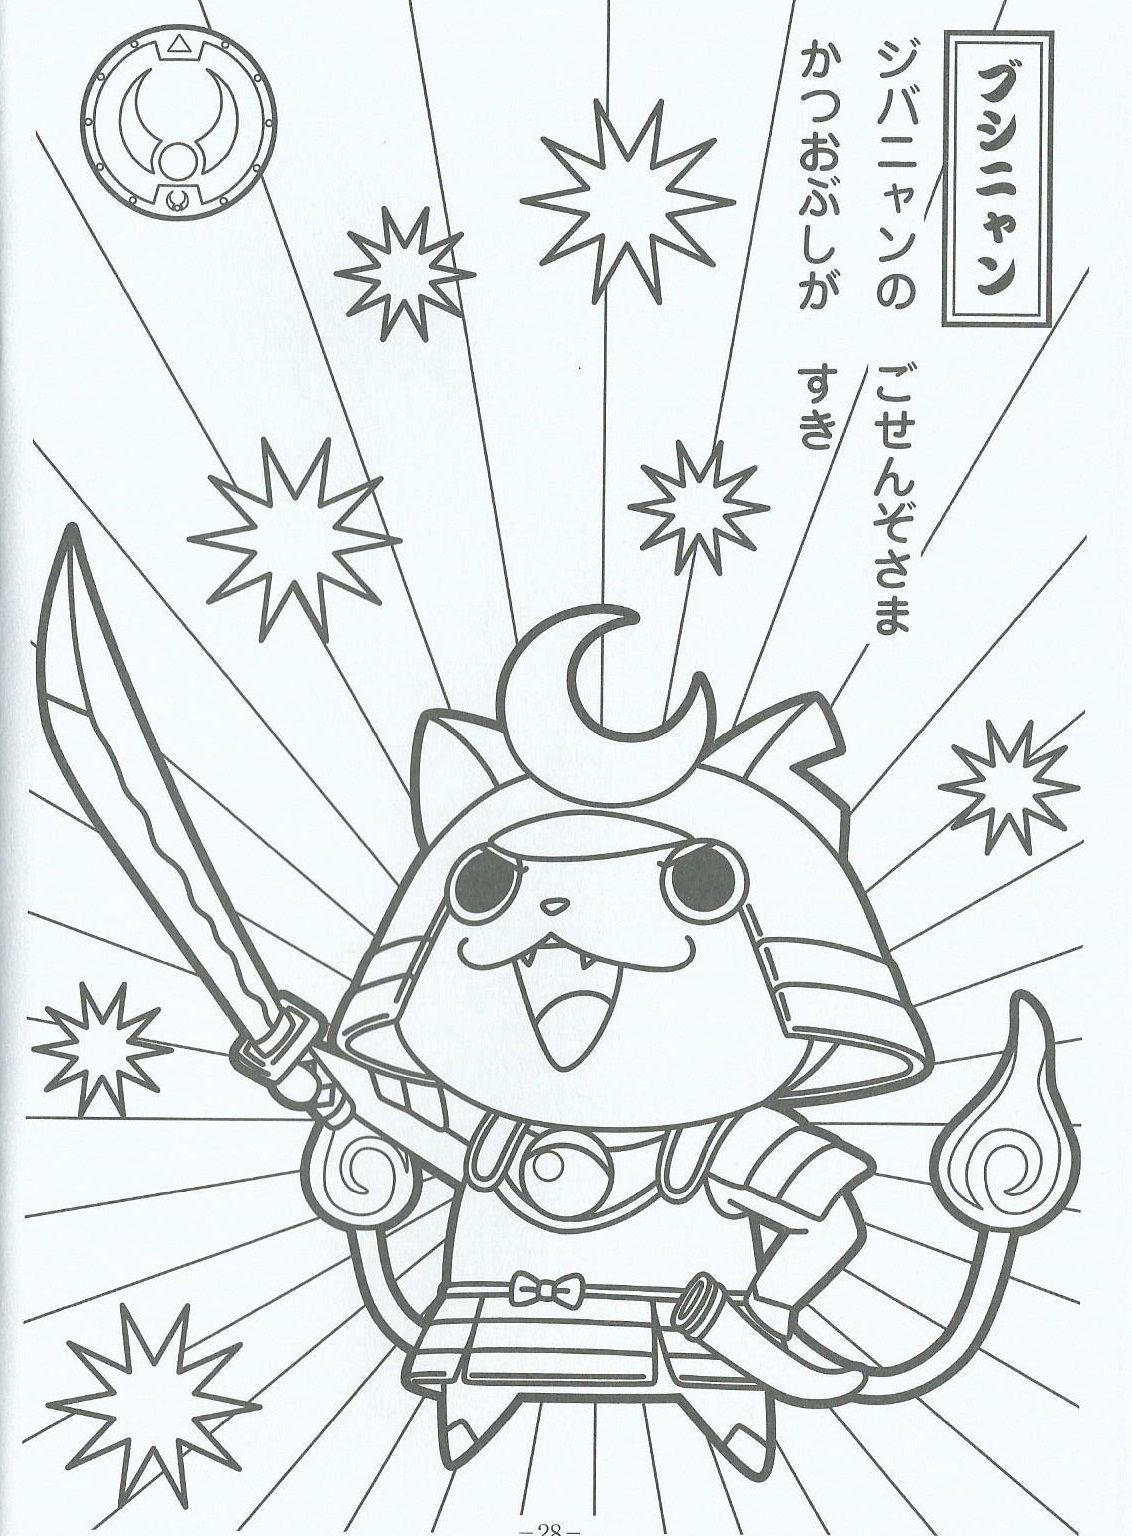 Yo Kai Watch Coloring Pages Gallery 17a - Free For kids